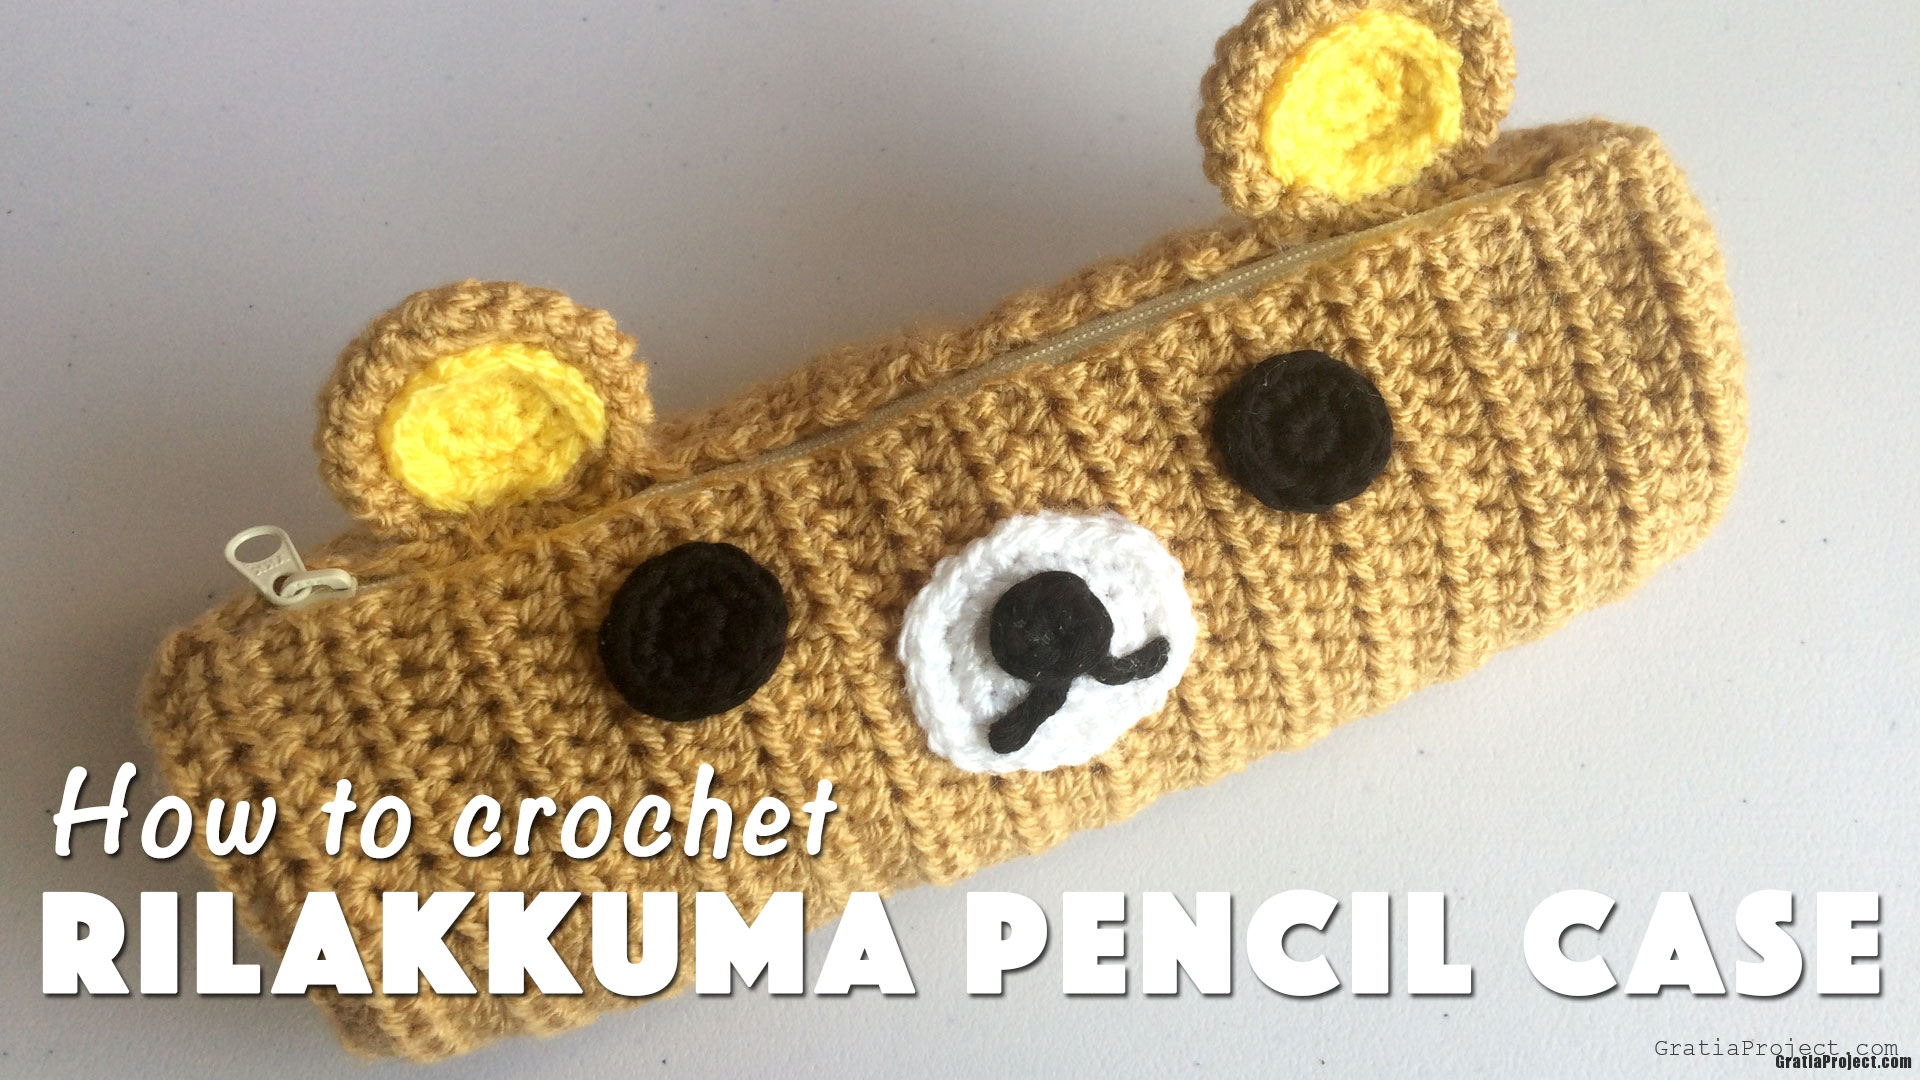 how-to-crochet-rilakkuma-pencil-case